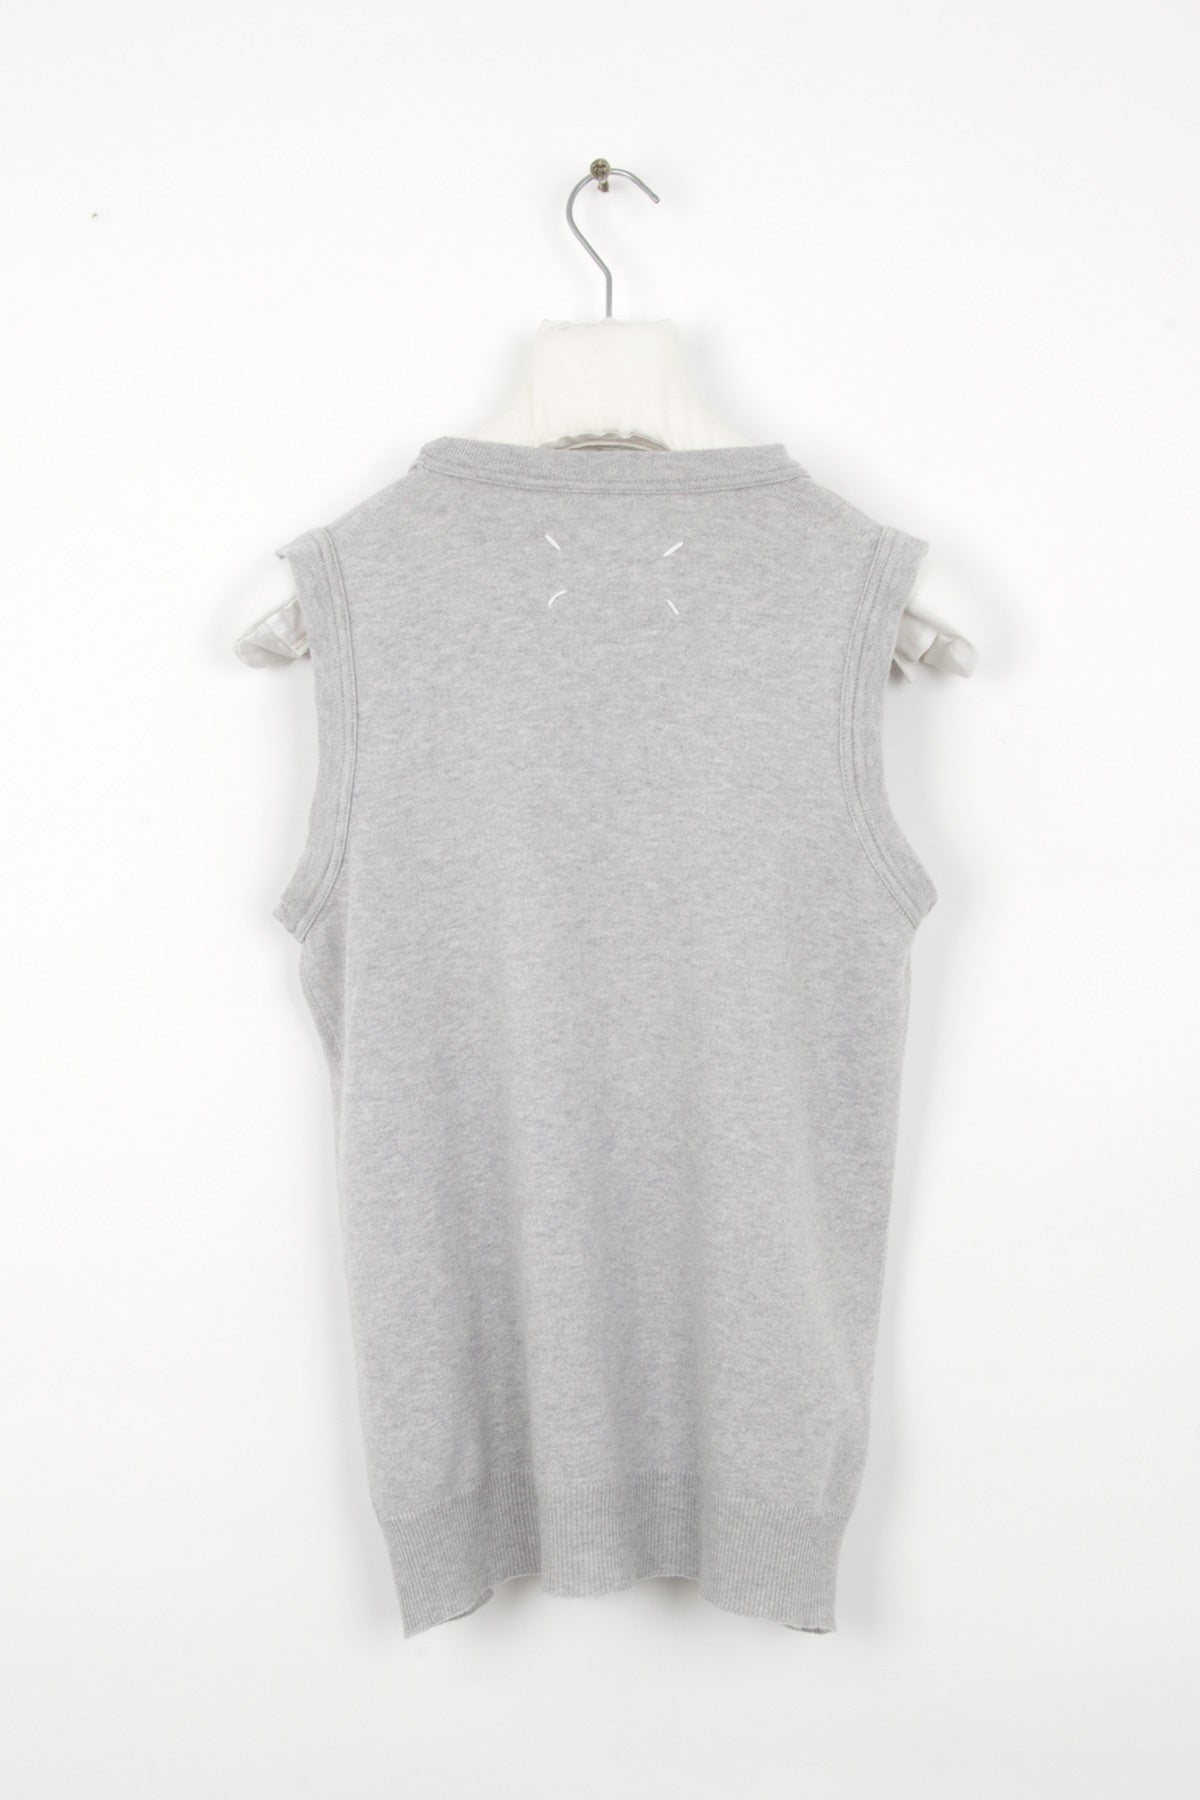 "2003 S/S KNITTED ""TANK-TOP"" VEST IN COTTON BY MISS DEANNA"